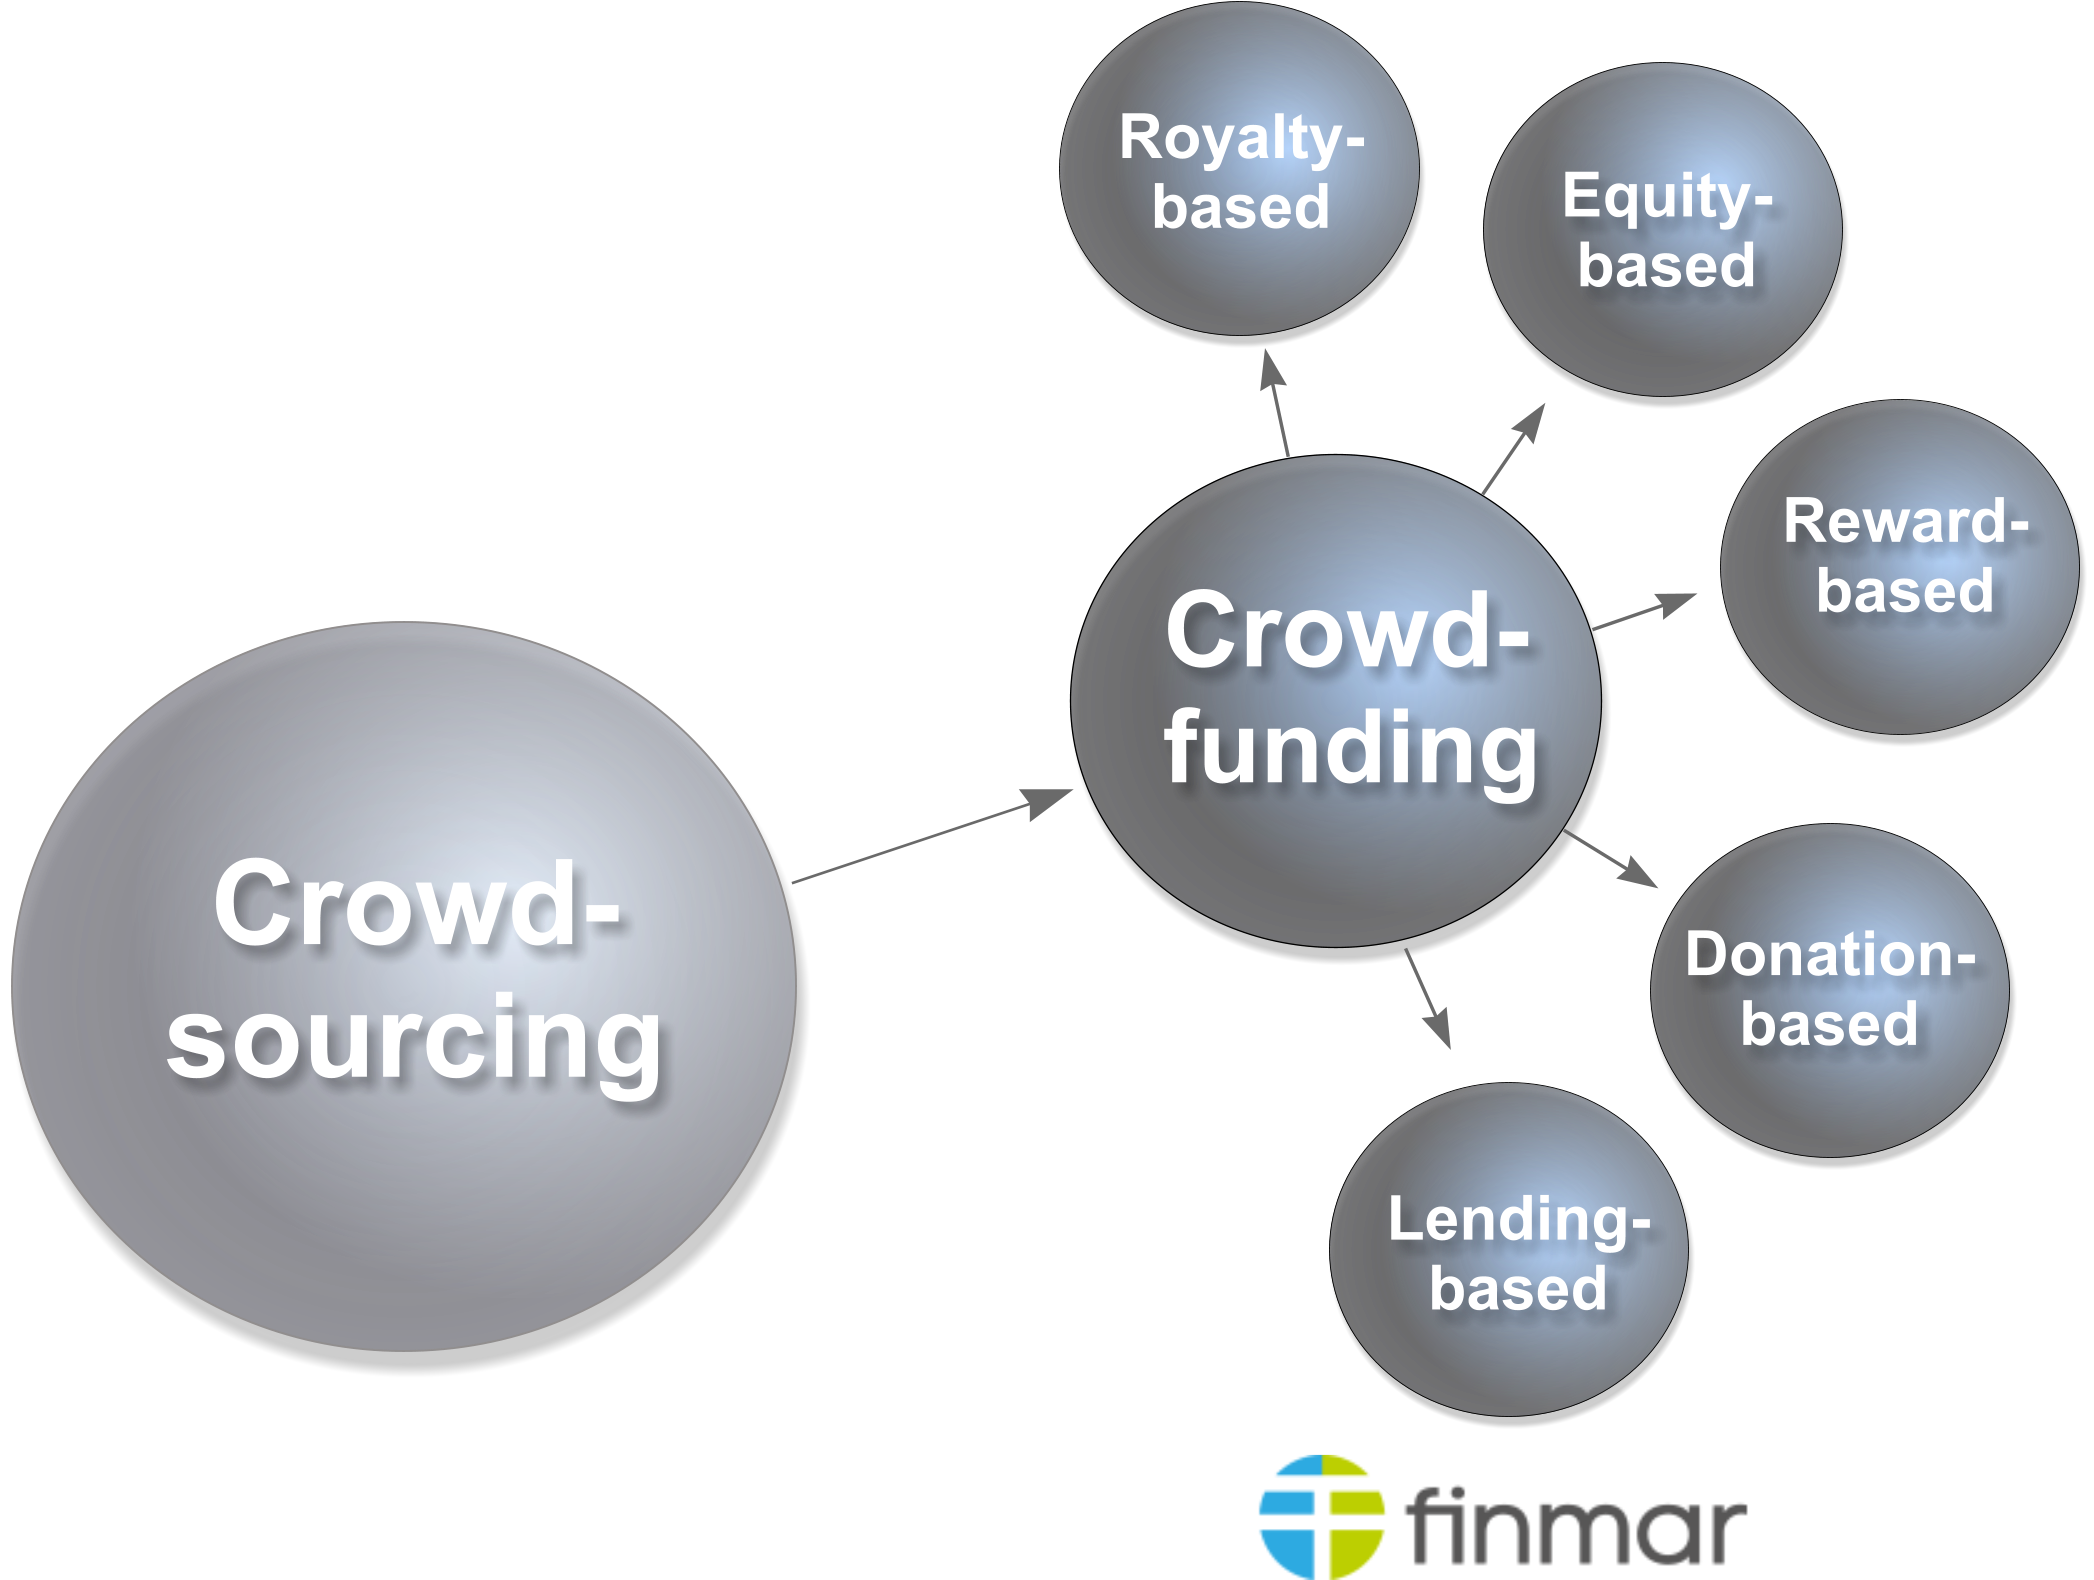 5 Arten des Crowdfunding: royalty-based crowdfunding, equity-based crowdfunding, reward-based crowdfunding, donation-based crowdfunding, lending-based crowdfunding